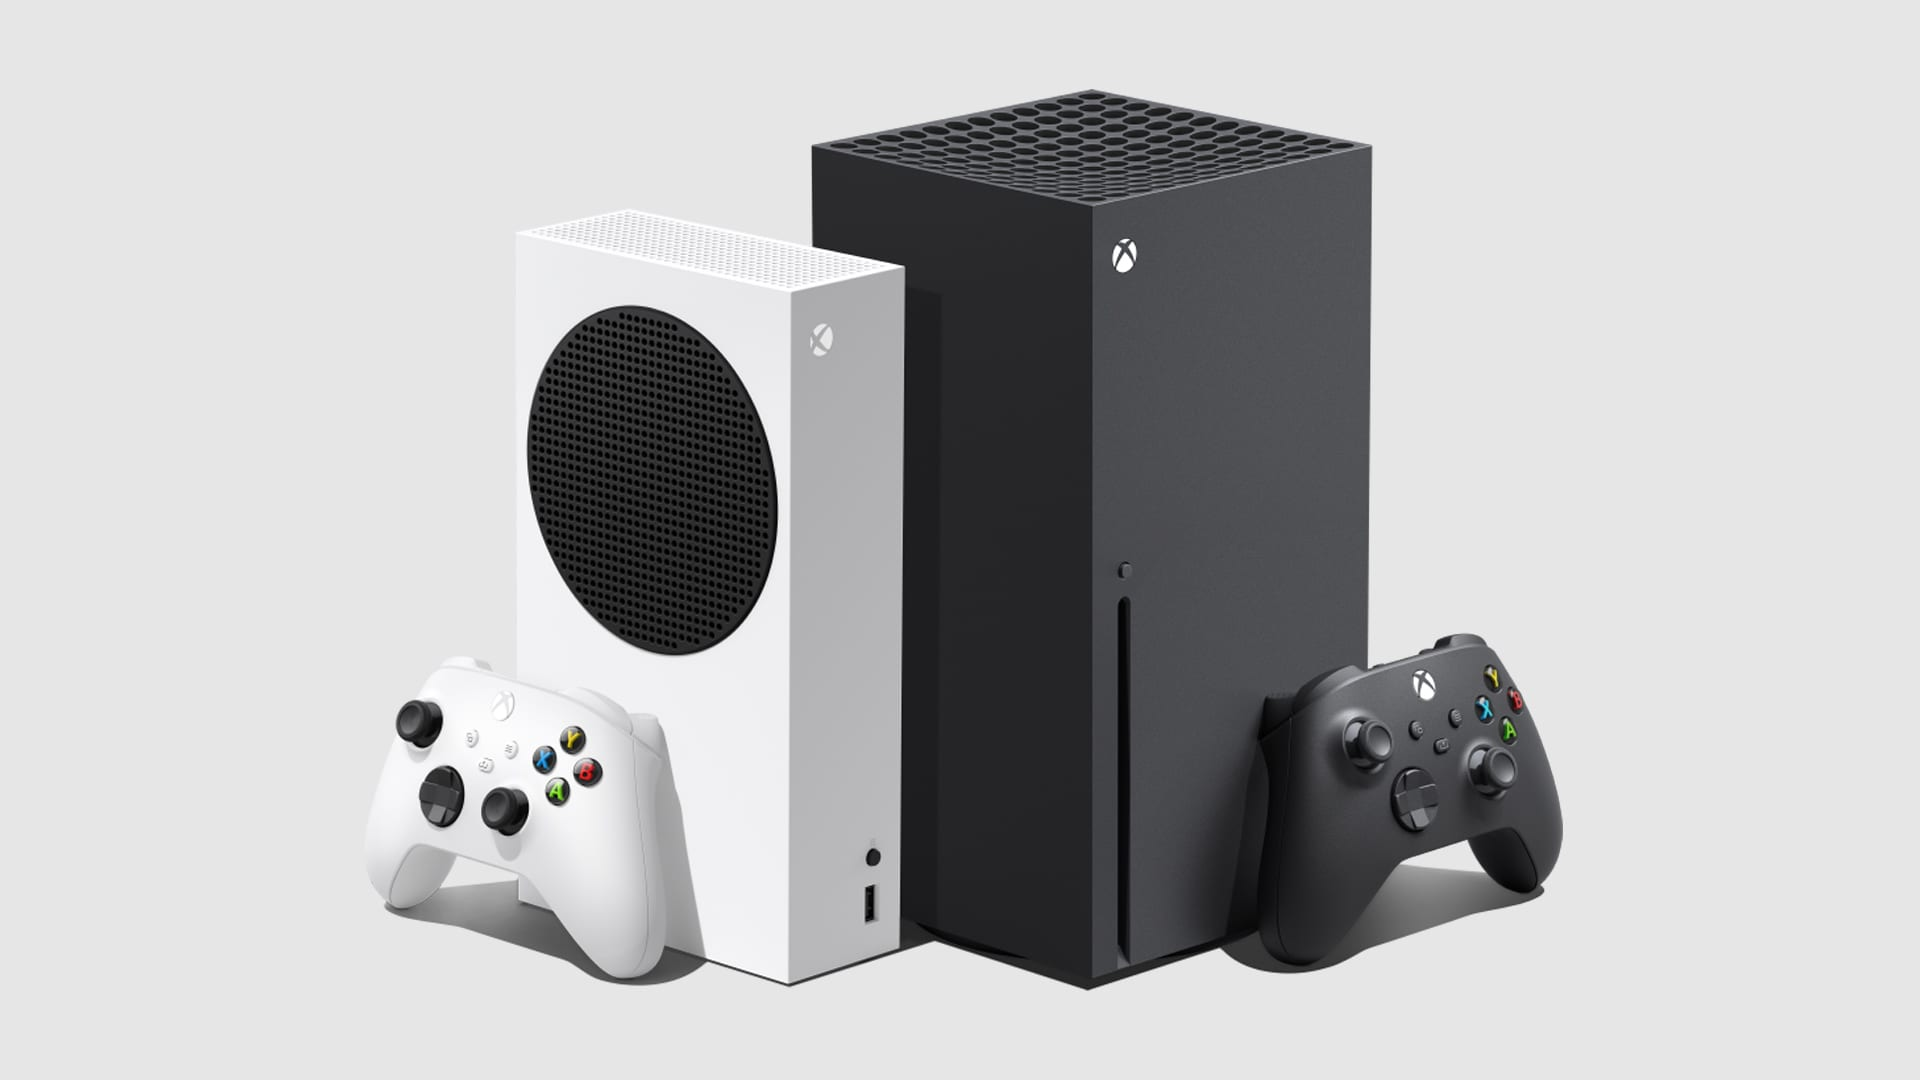 xbox series x, xbox series s, connect controllers